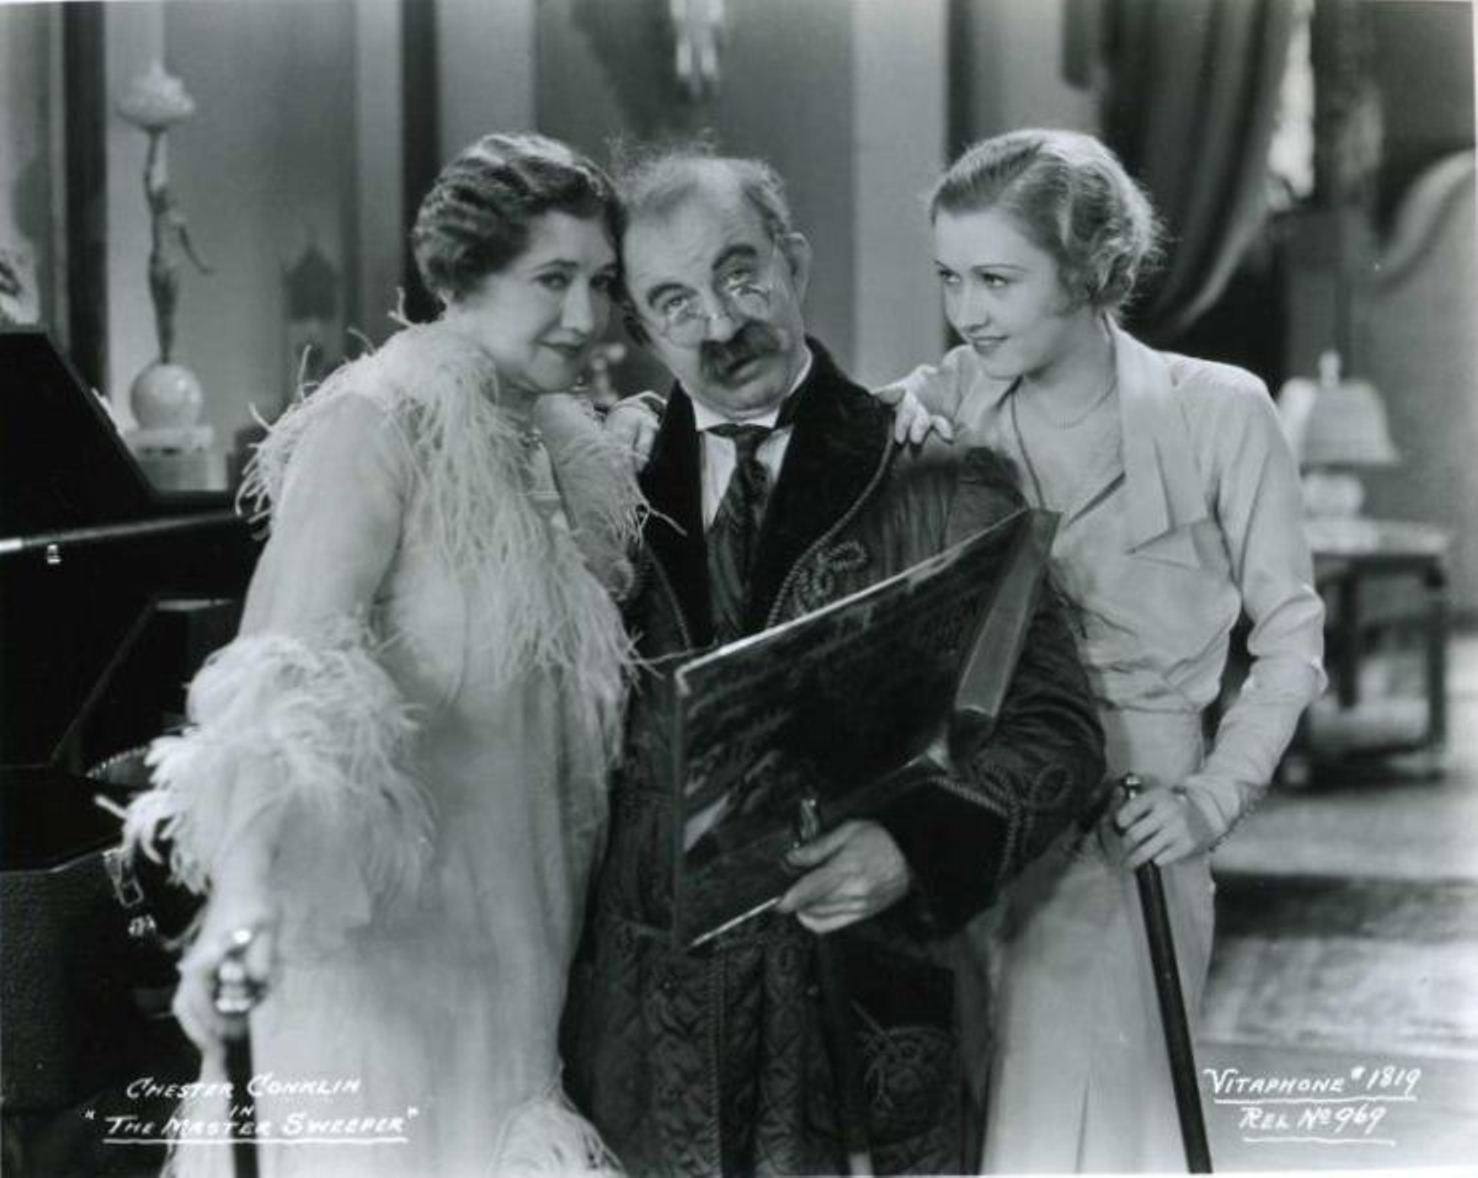 Chester Conklin in The Master Sweeper